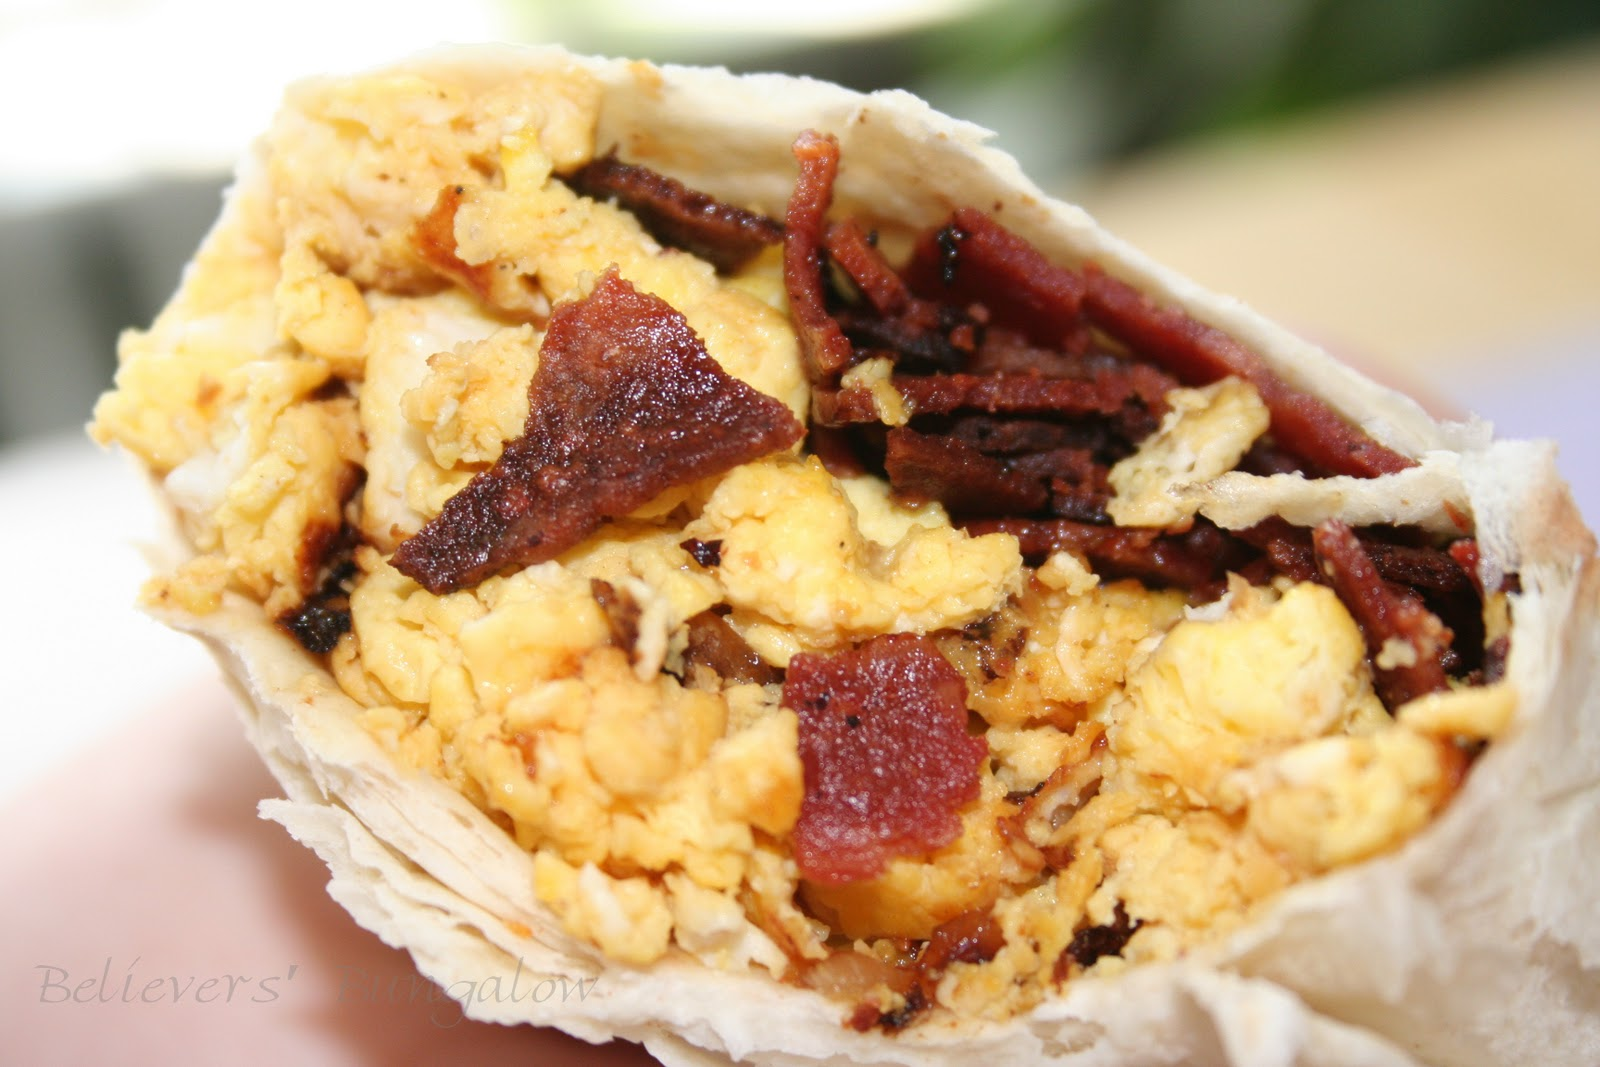 ingredients per burrito 1 large burrito tortilla 2 eggs 3 pieces of ...